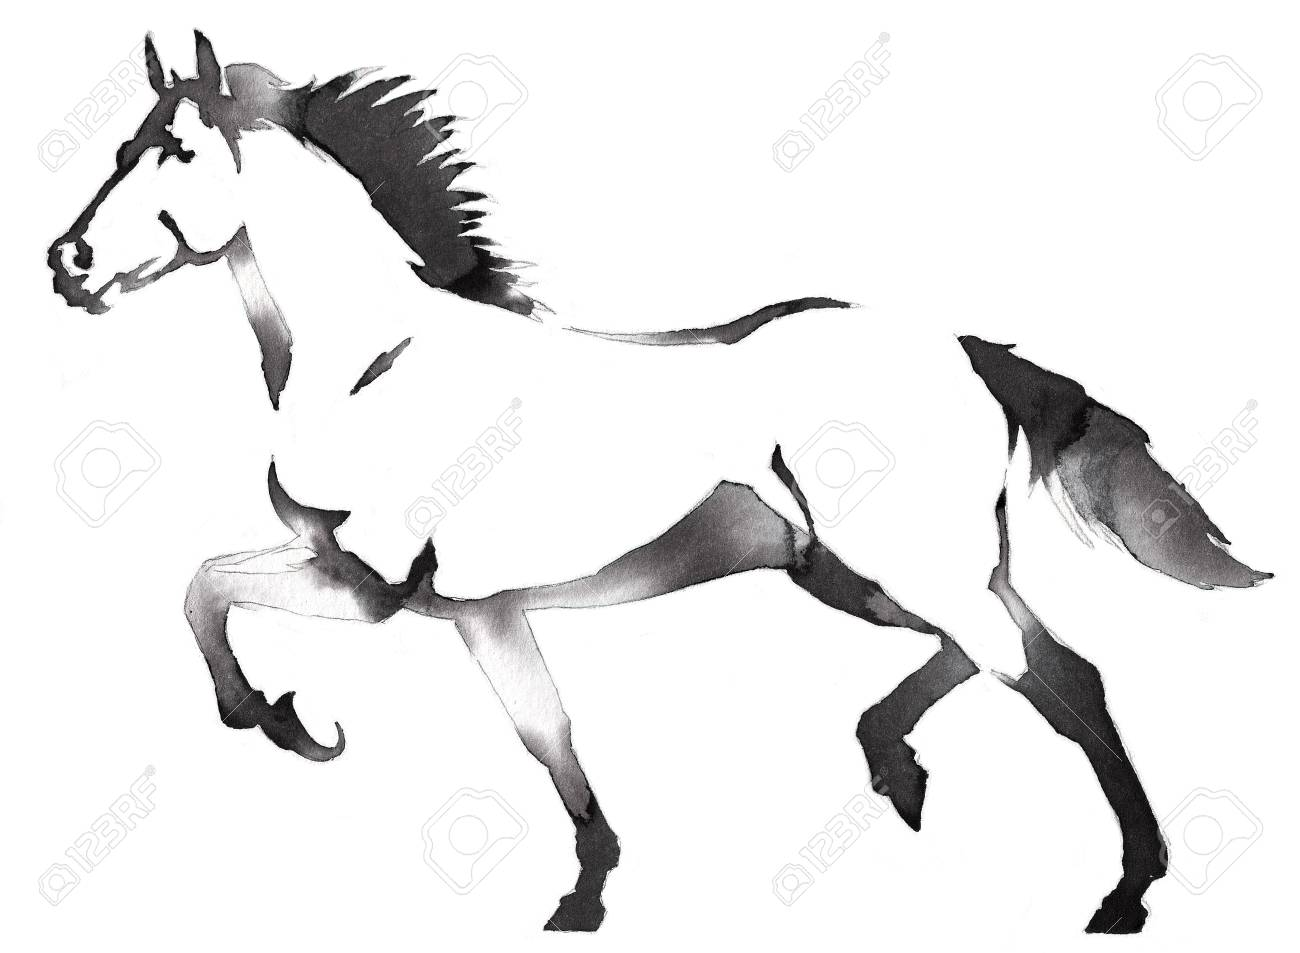 Black And White Painting With Water And Ink Draw Horse Illustration Stock Photo Picture And Royalty Free Image Image 66758248